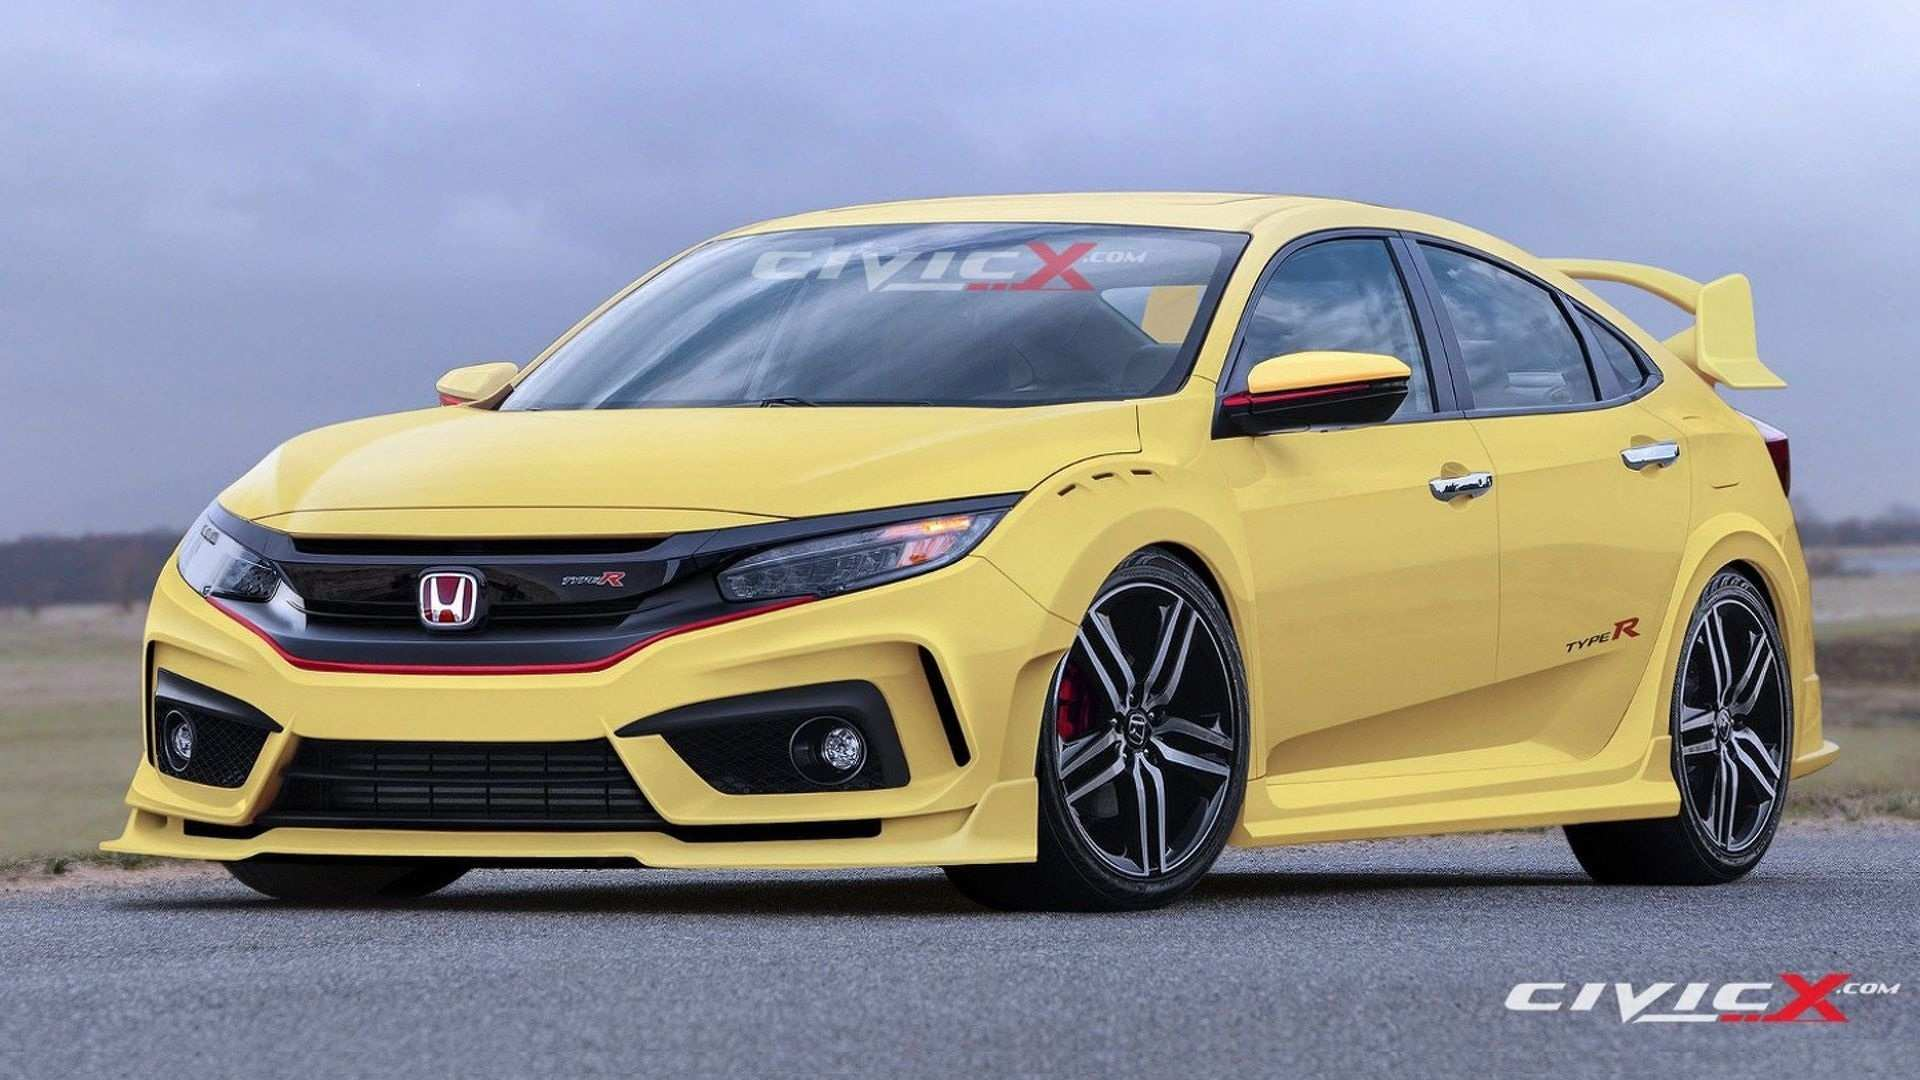 38 The Best 2020 Honda Civic Si Type R Redesign And Concept